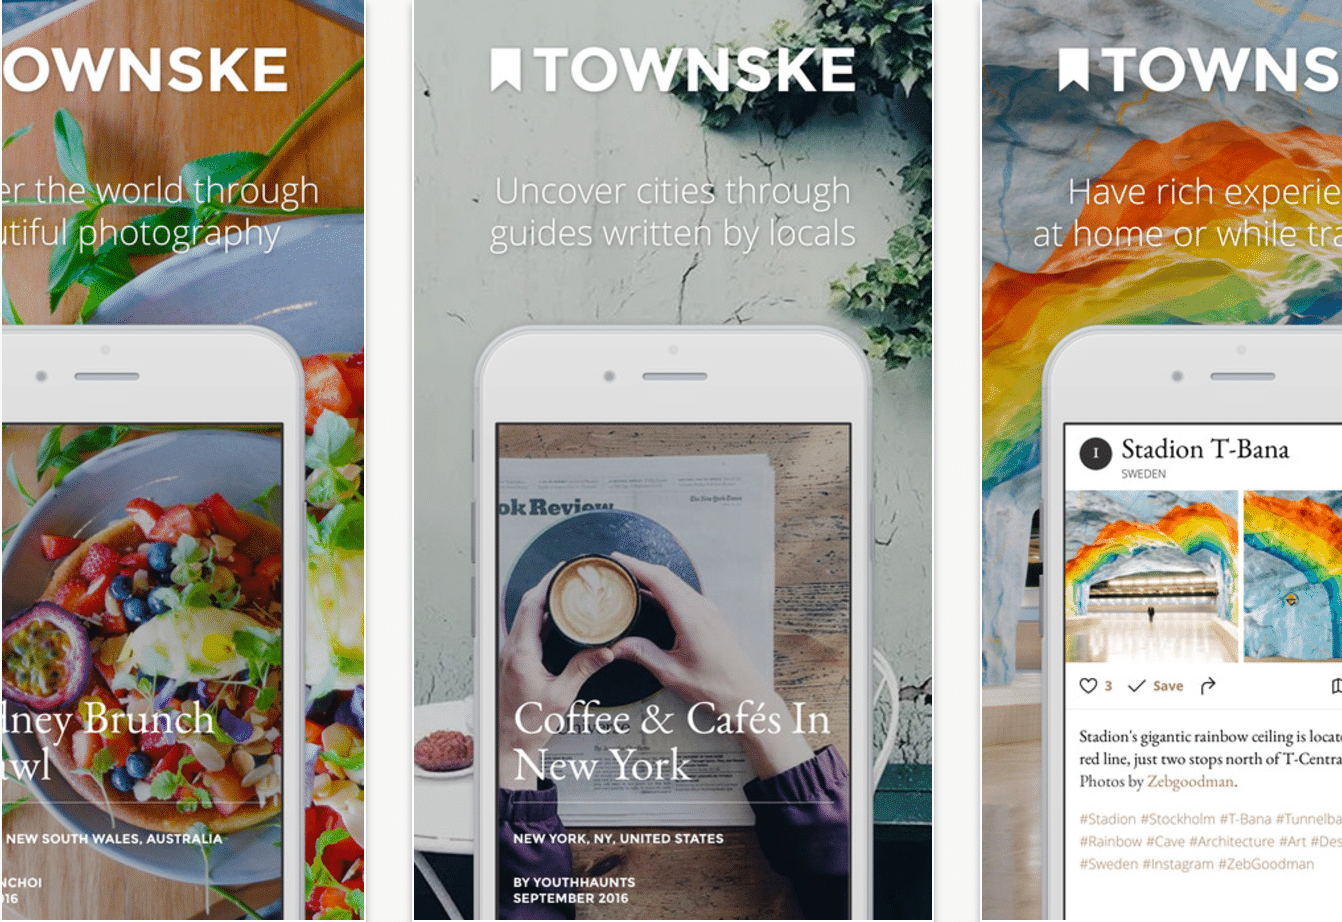 The Townske app using React Native